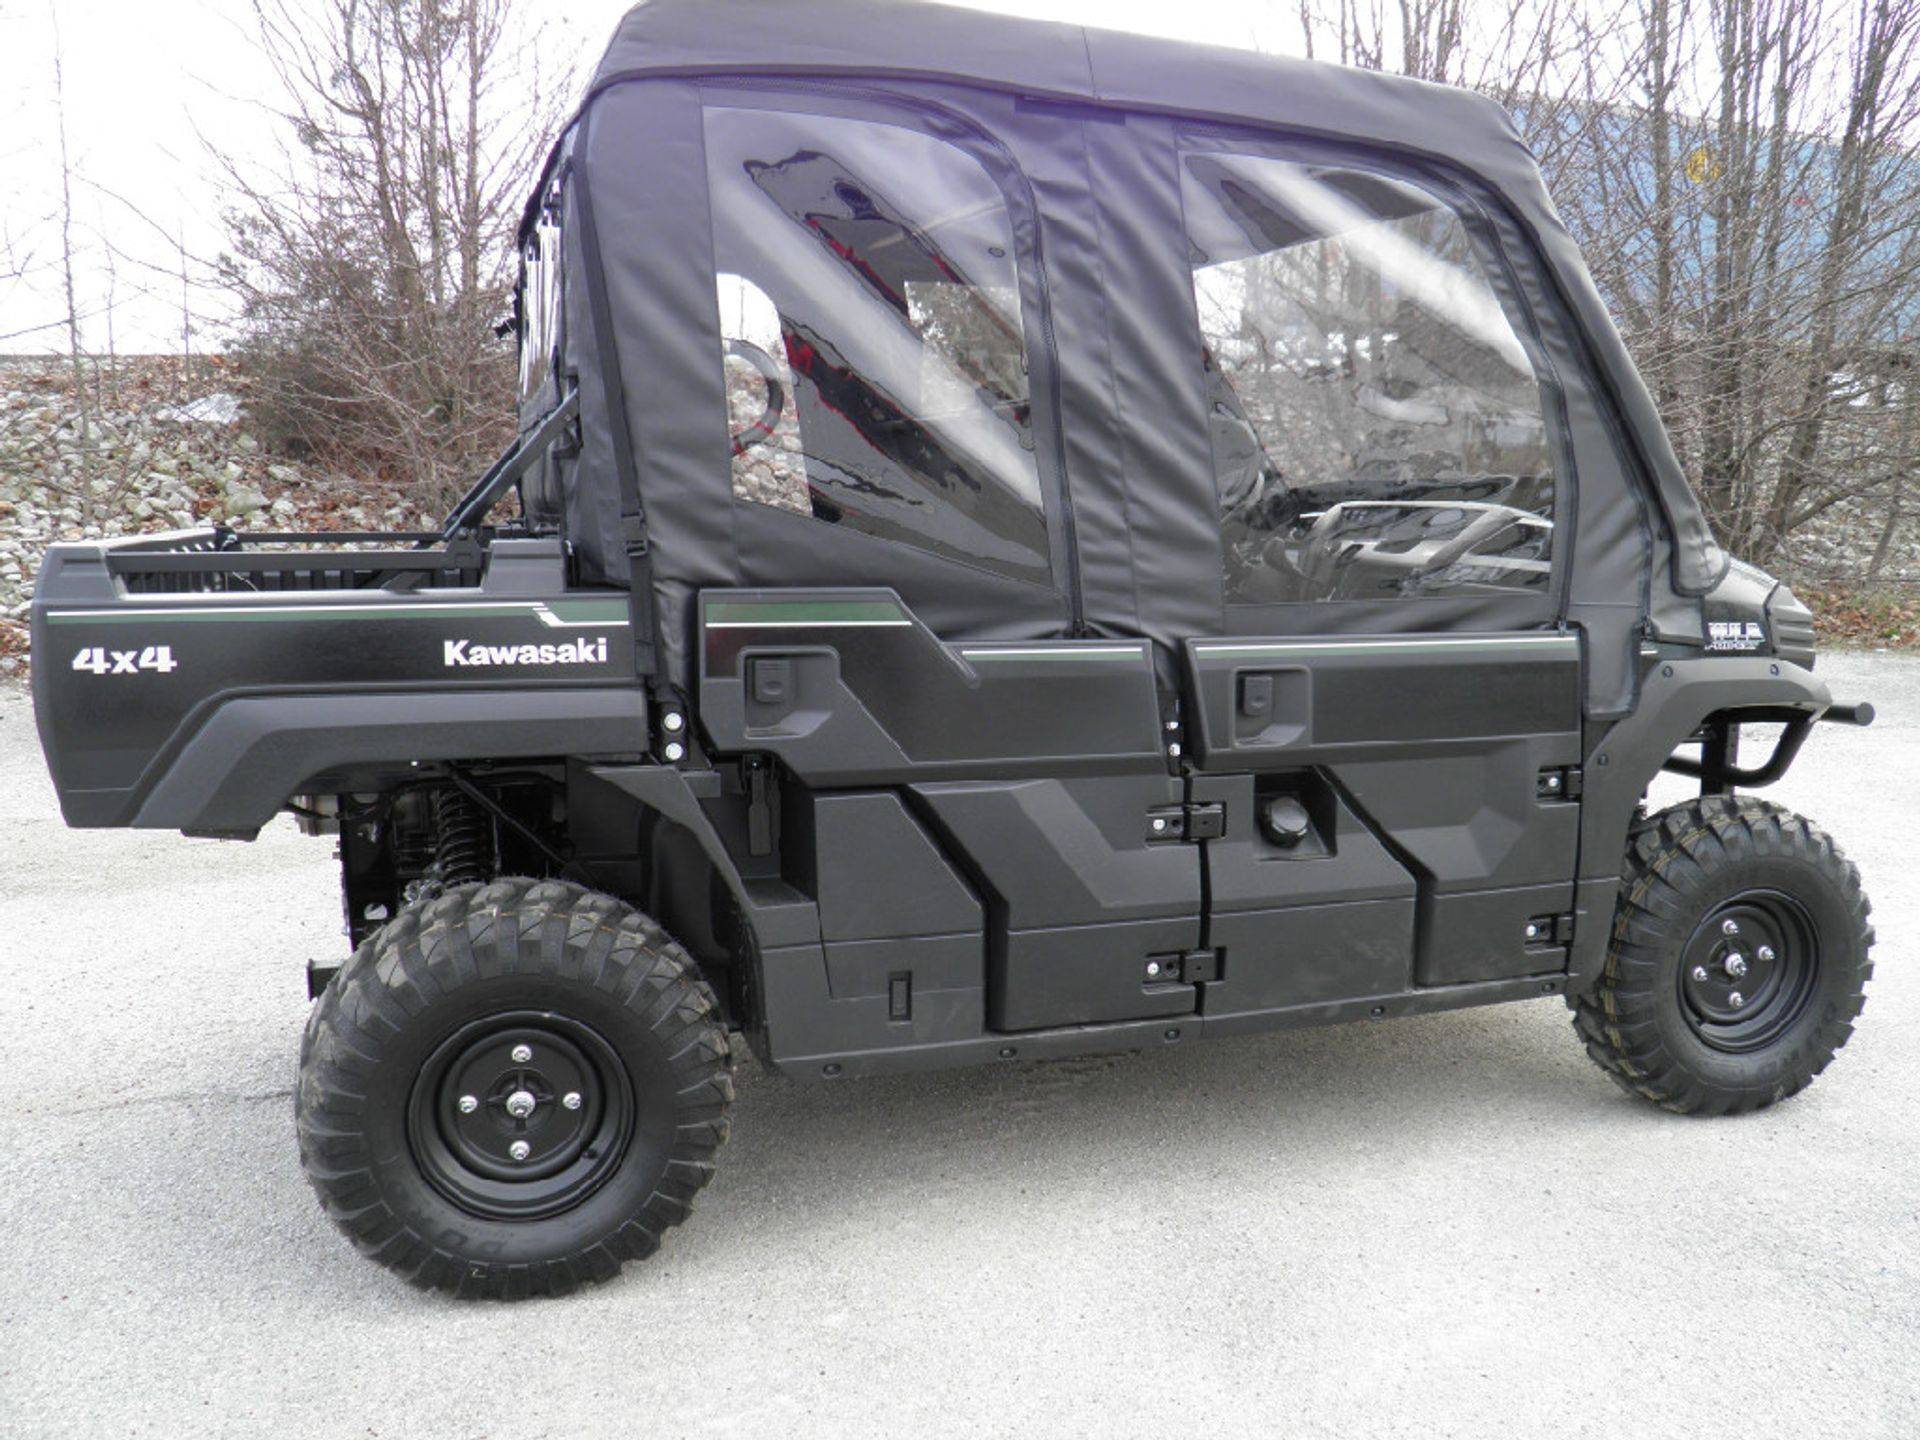 Kawasaki Mule FXT & DXT parts & accessories